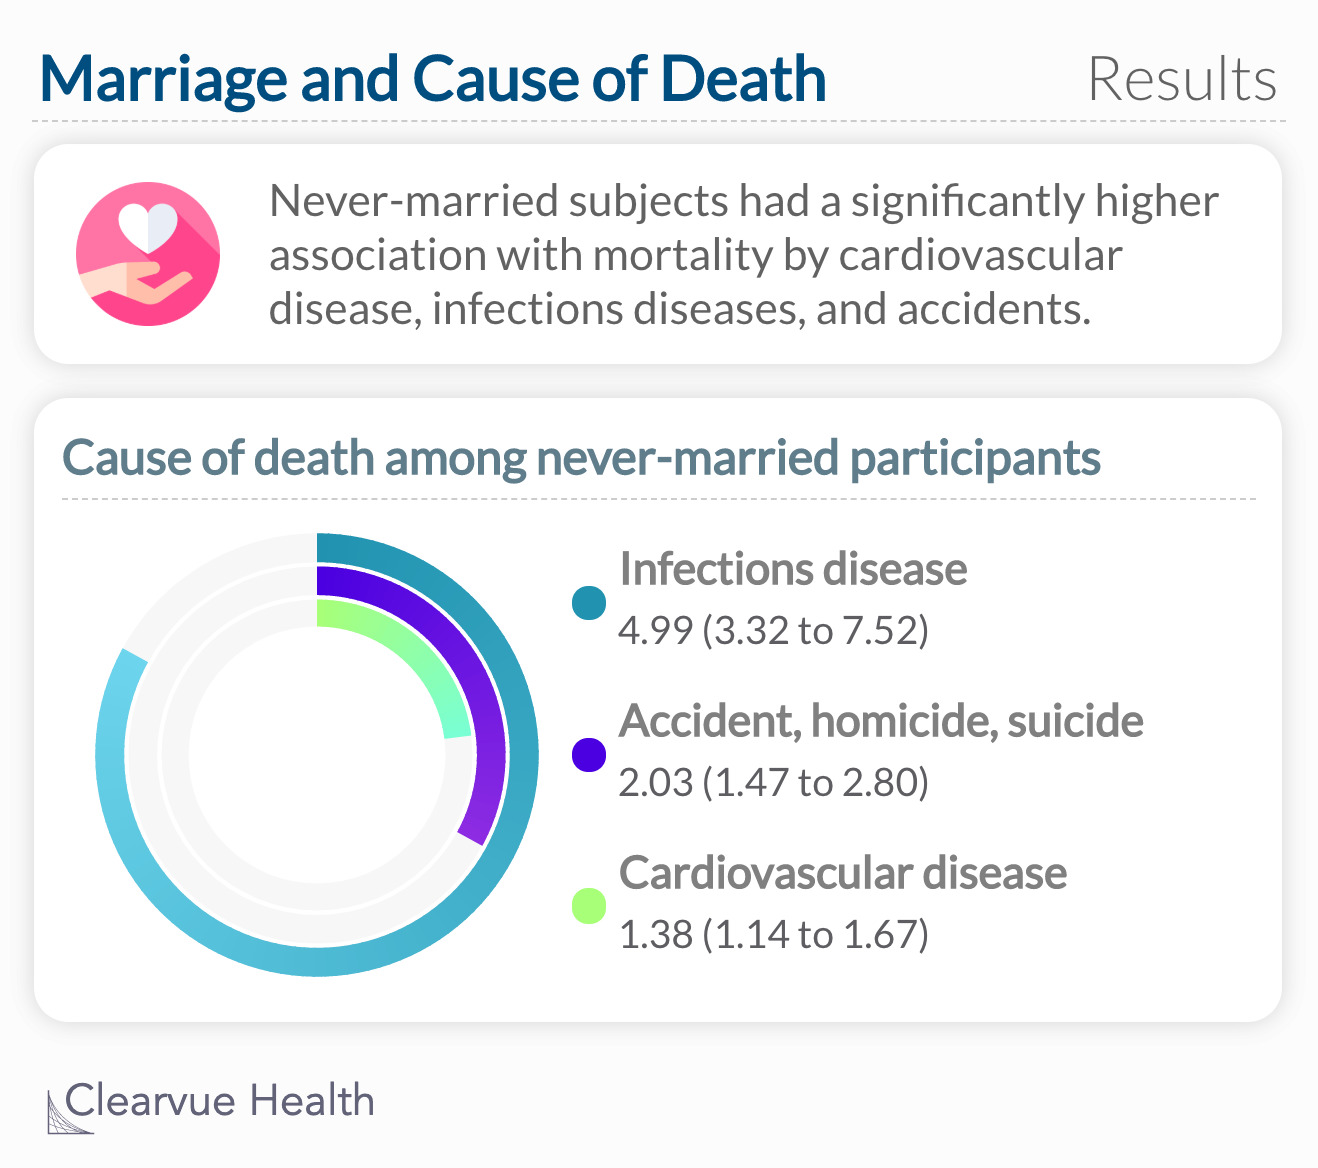 Never-married subjects had a significantly higher association with mortality by cardiovascular disease, infections diseases, and accidents.